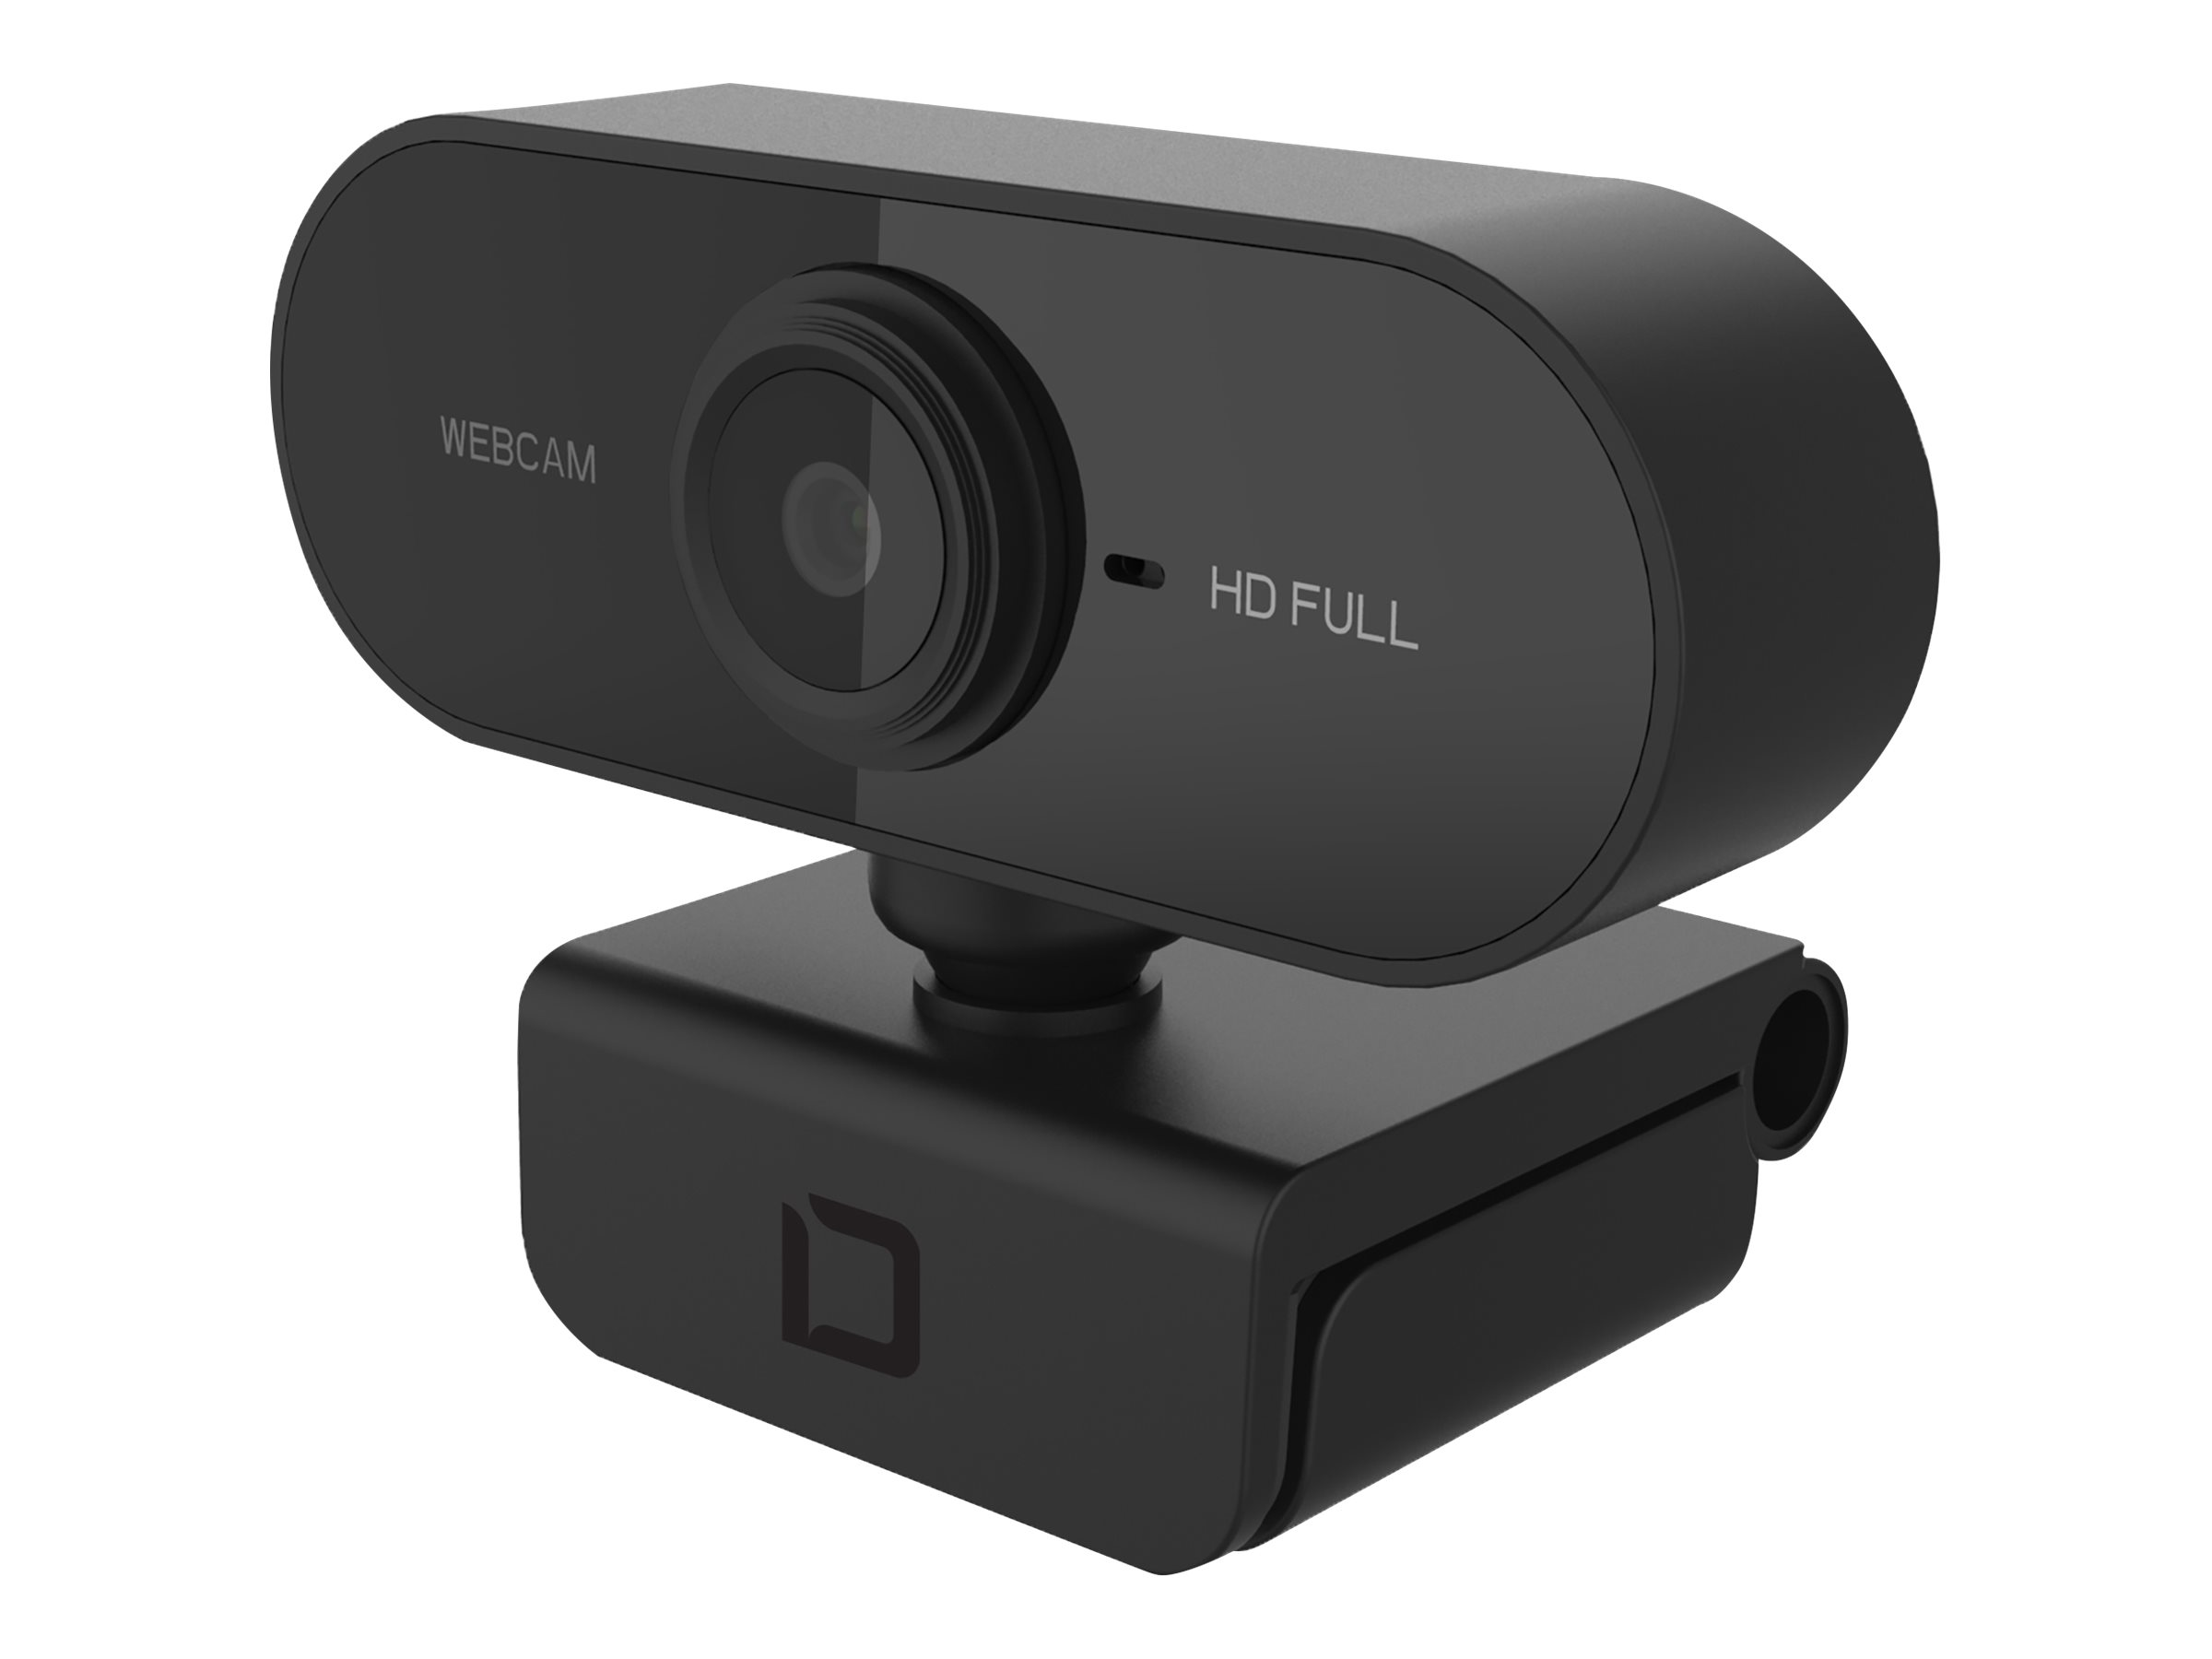 DICOTA Webcam PRO Full HD - Web-Kamera - Farbe - 1920 x 1080 - 1080p - Audio